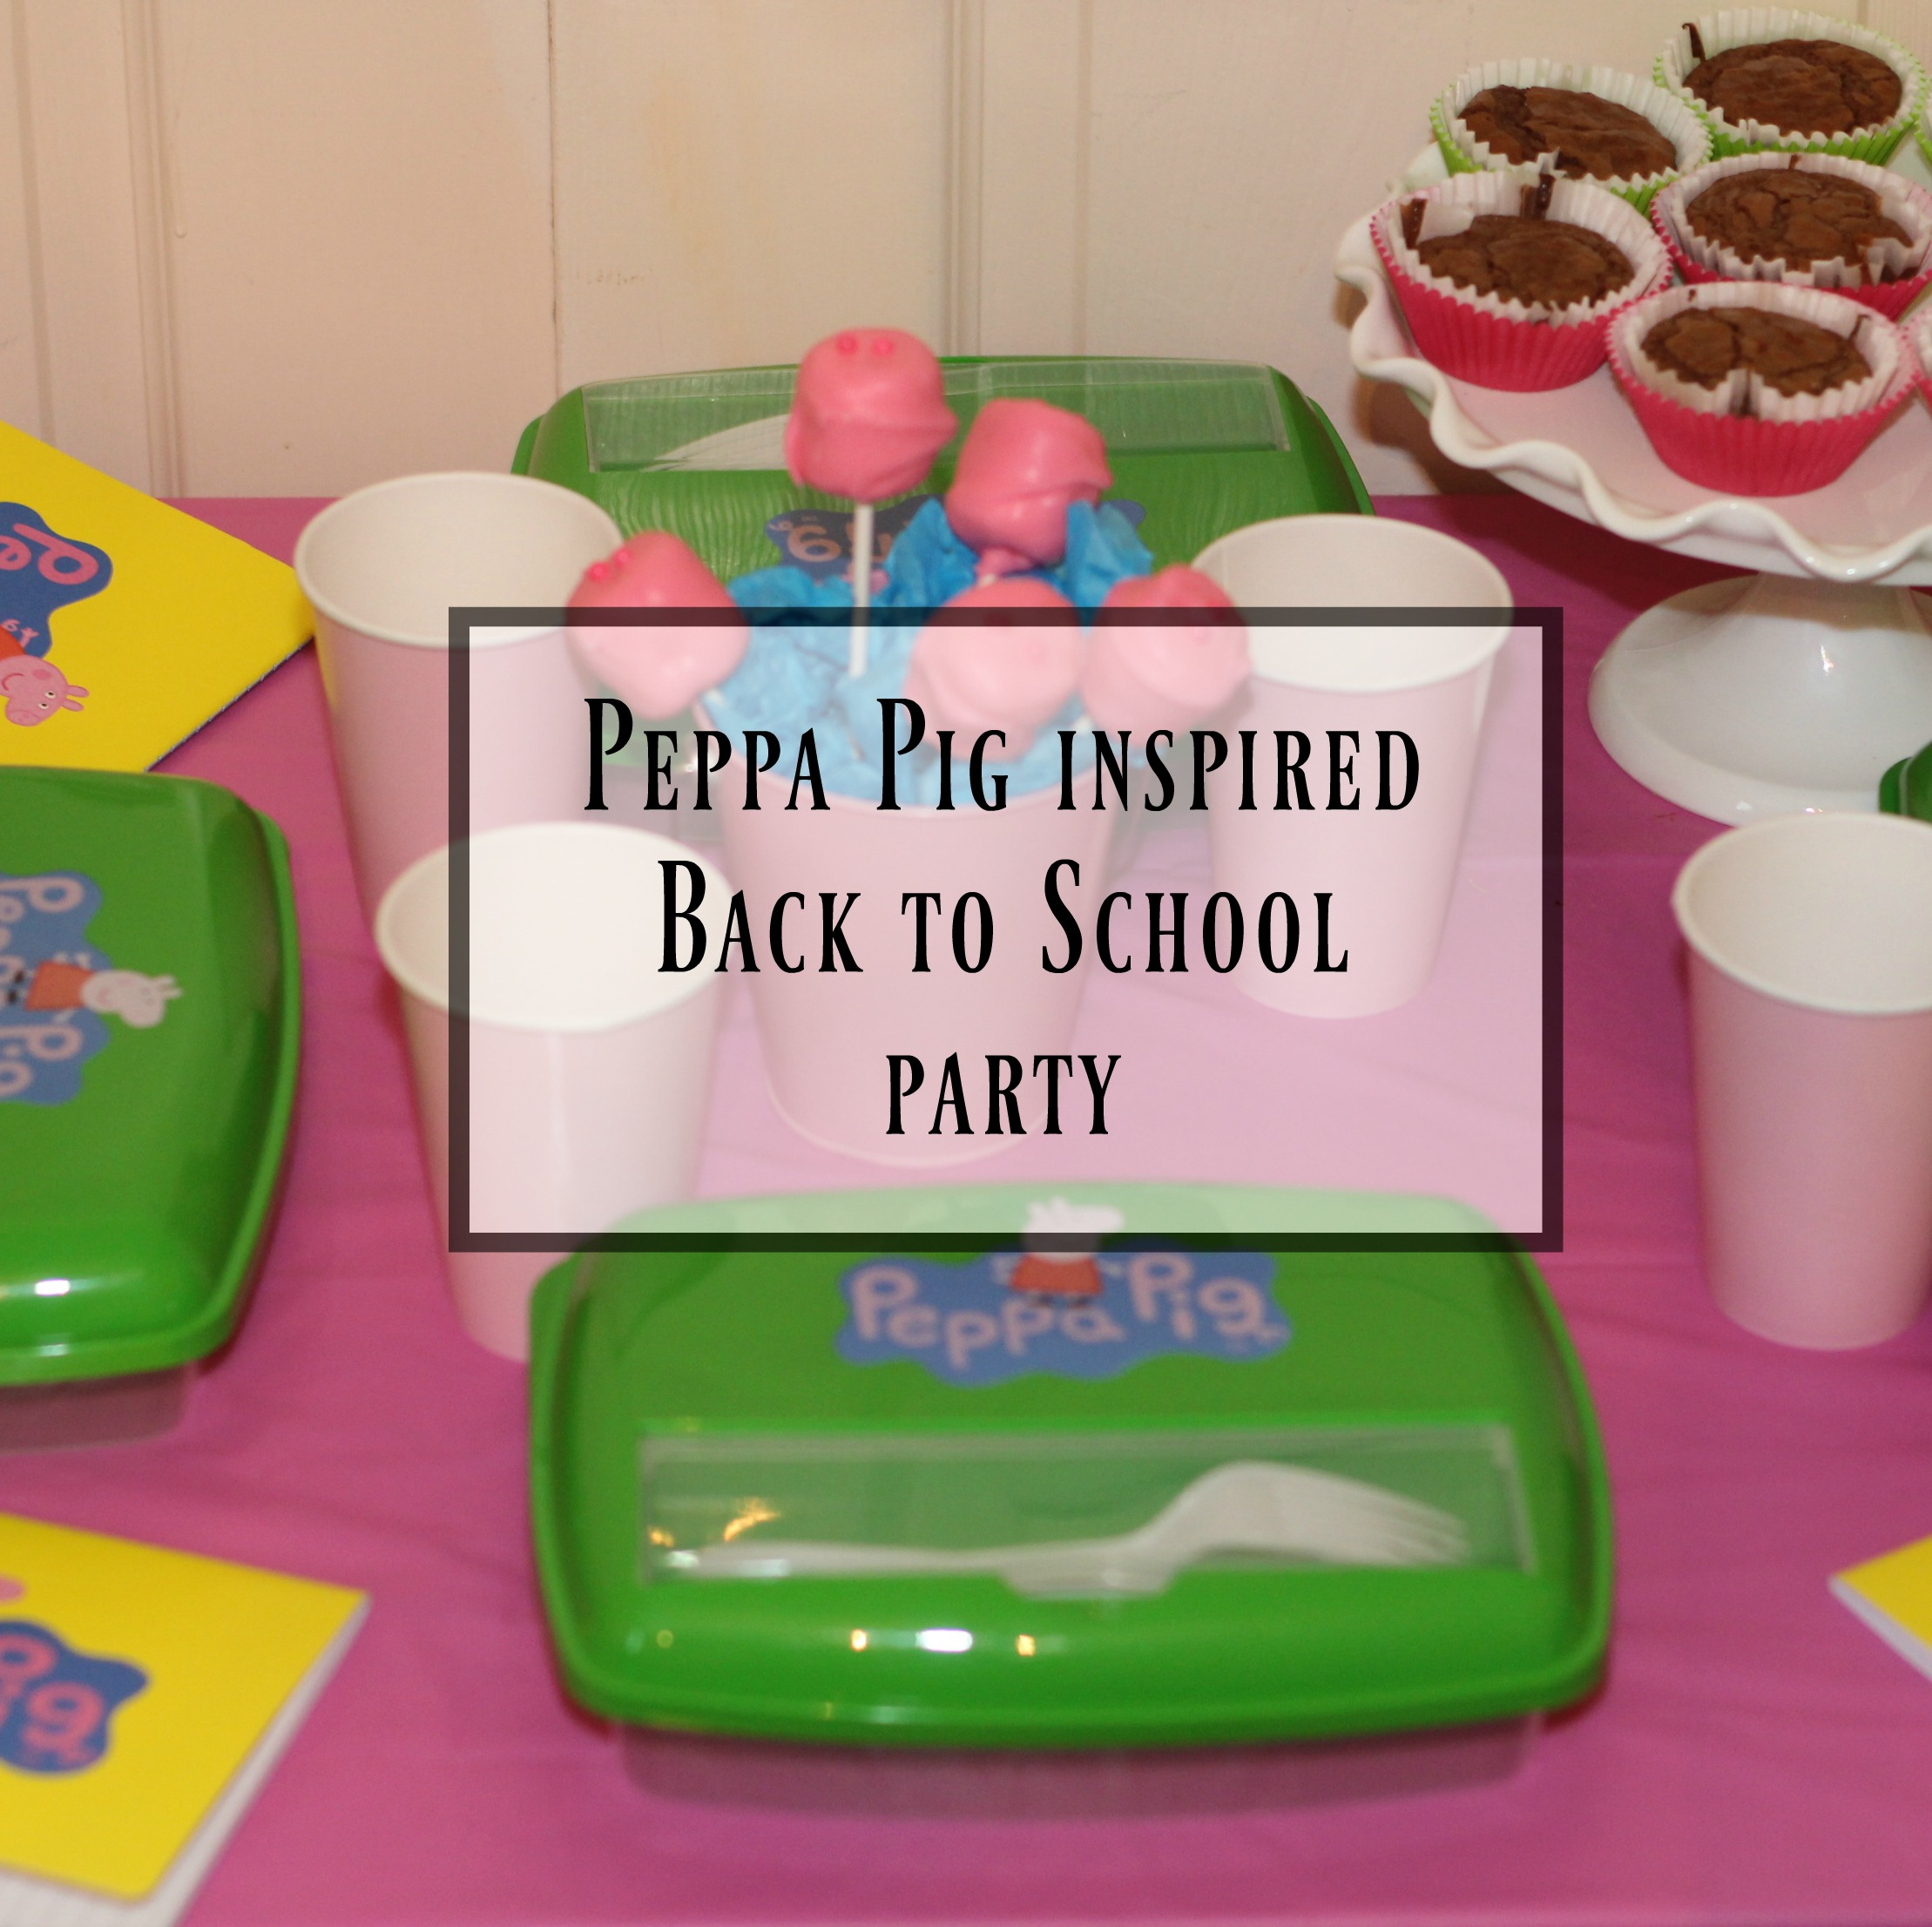 Peppa-pig-party-ideas